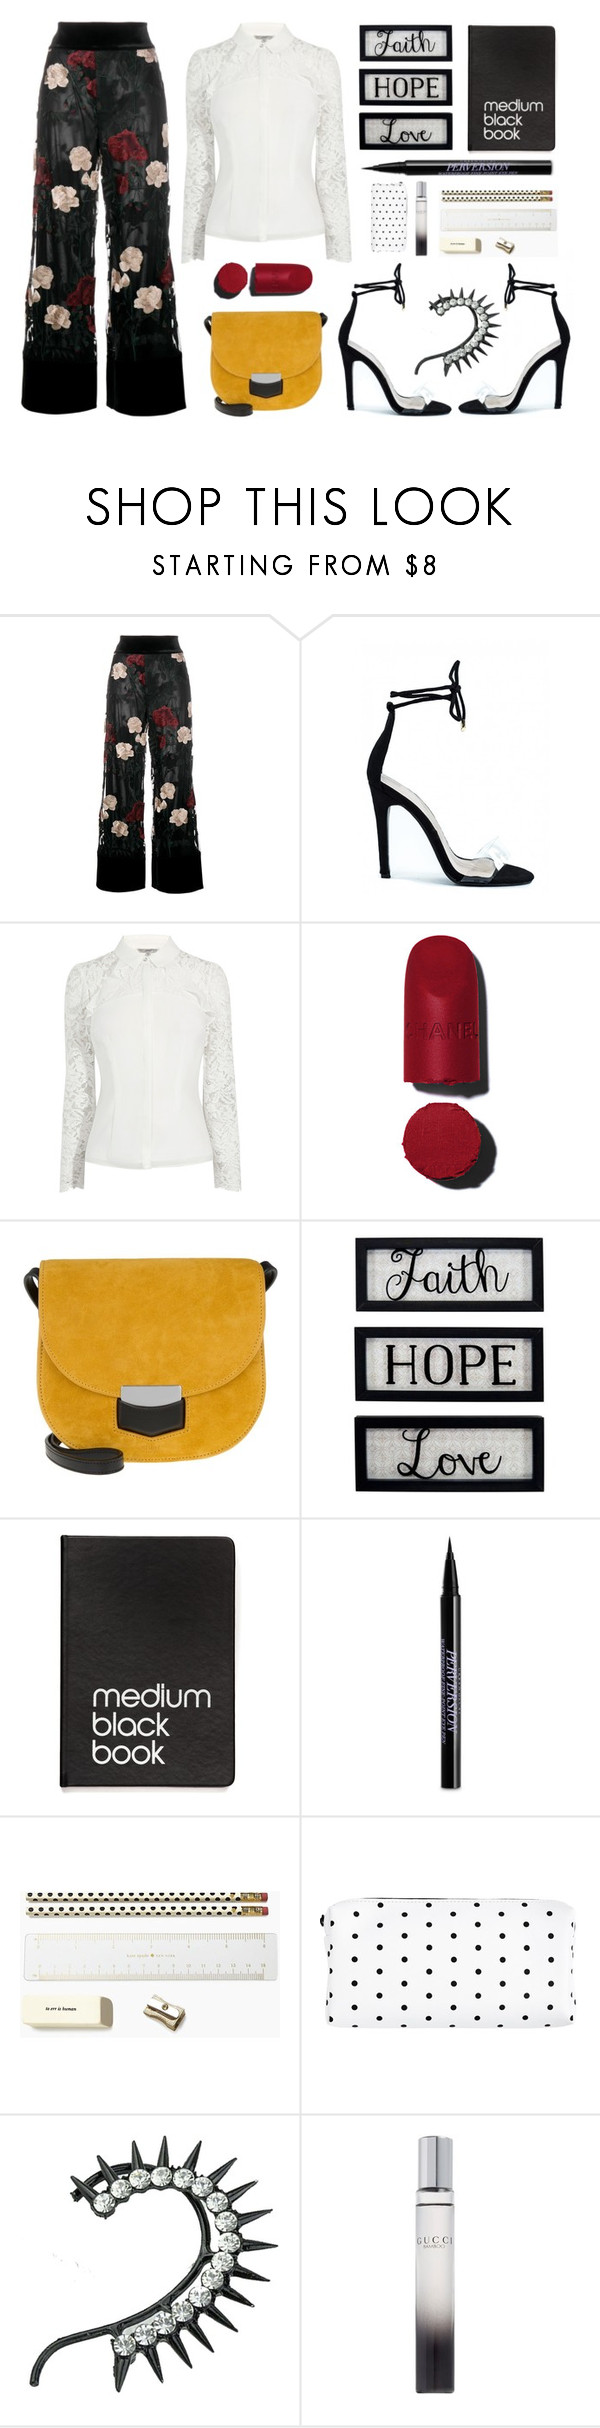 """Medium Black Book"" by romaosorno ❤ liked on Polyvore featuring Ganni, CÉLINE, New View, Dinks, Urban Decay, Kate Spade and Gucci"